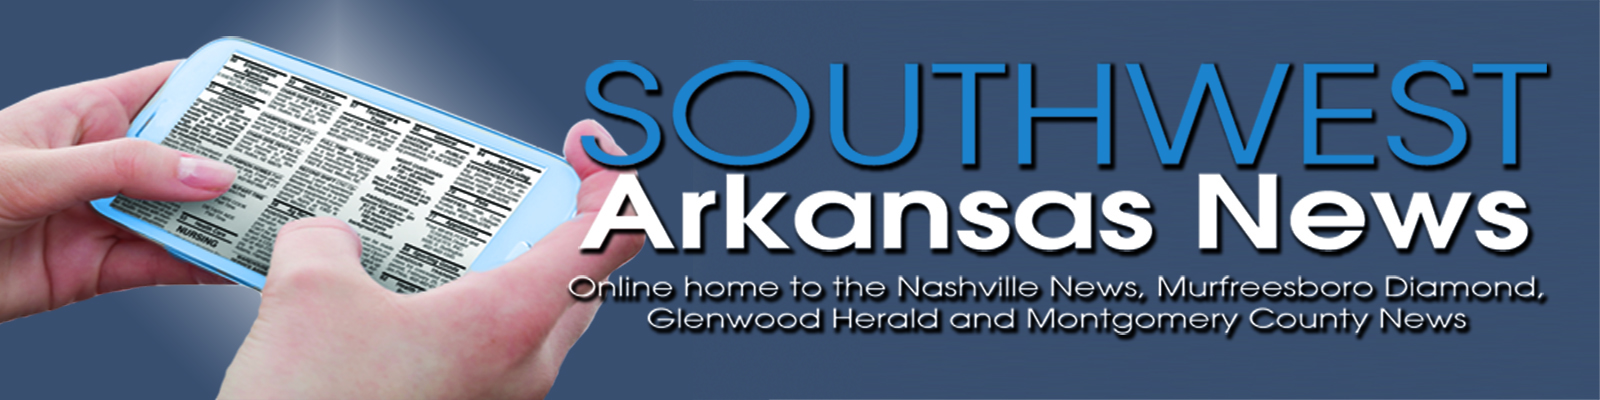 SW Arkansas News